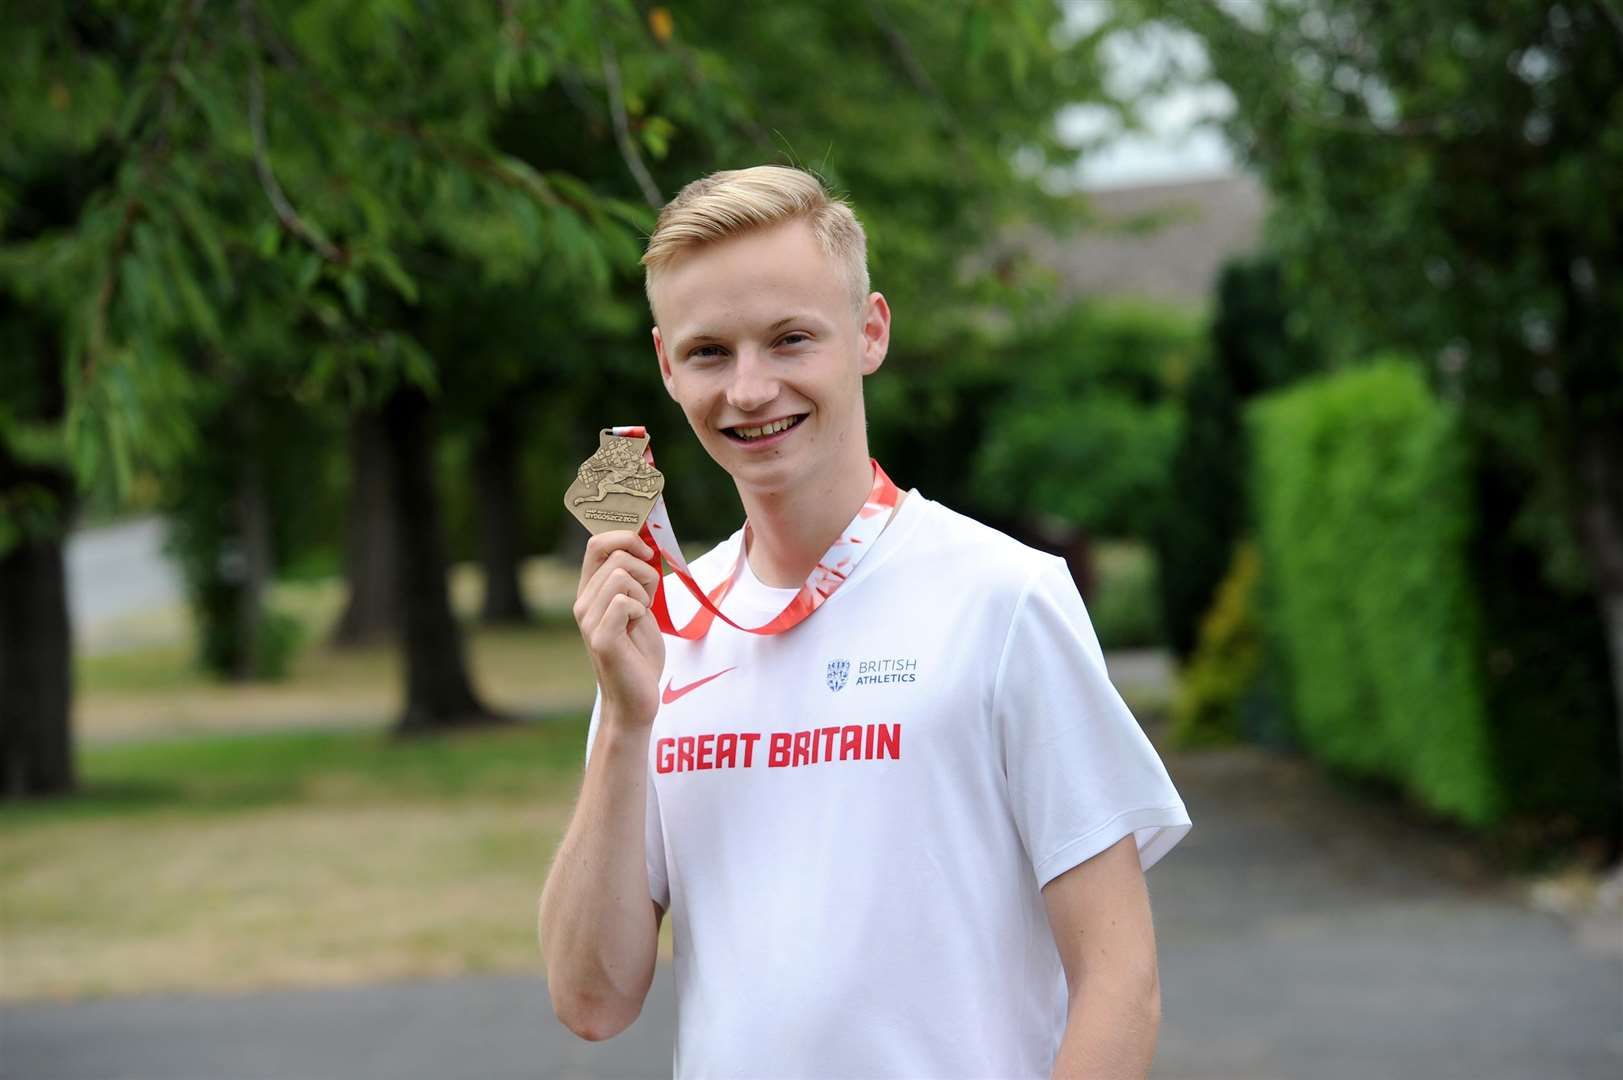 Callum Wilkinson has just won the World Junior U20 Championship in Poland. (6100348)